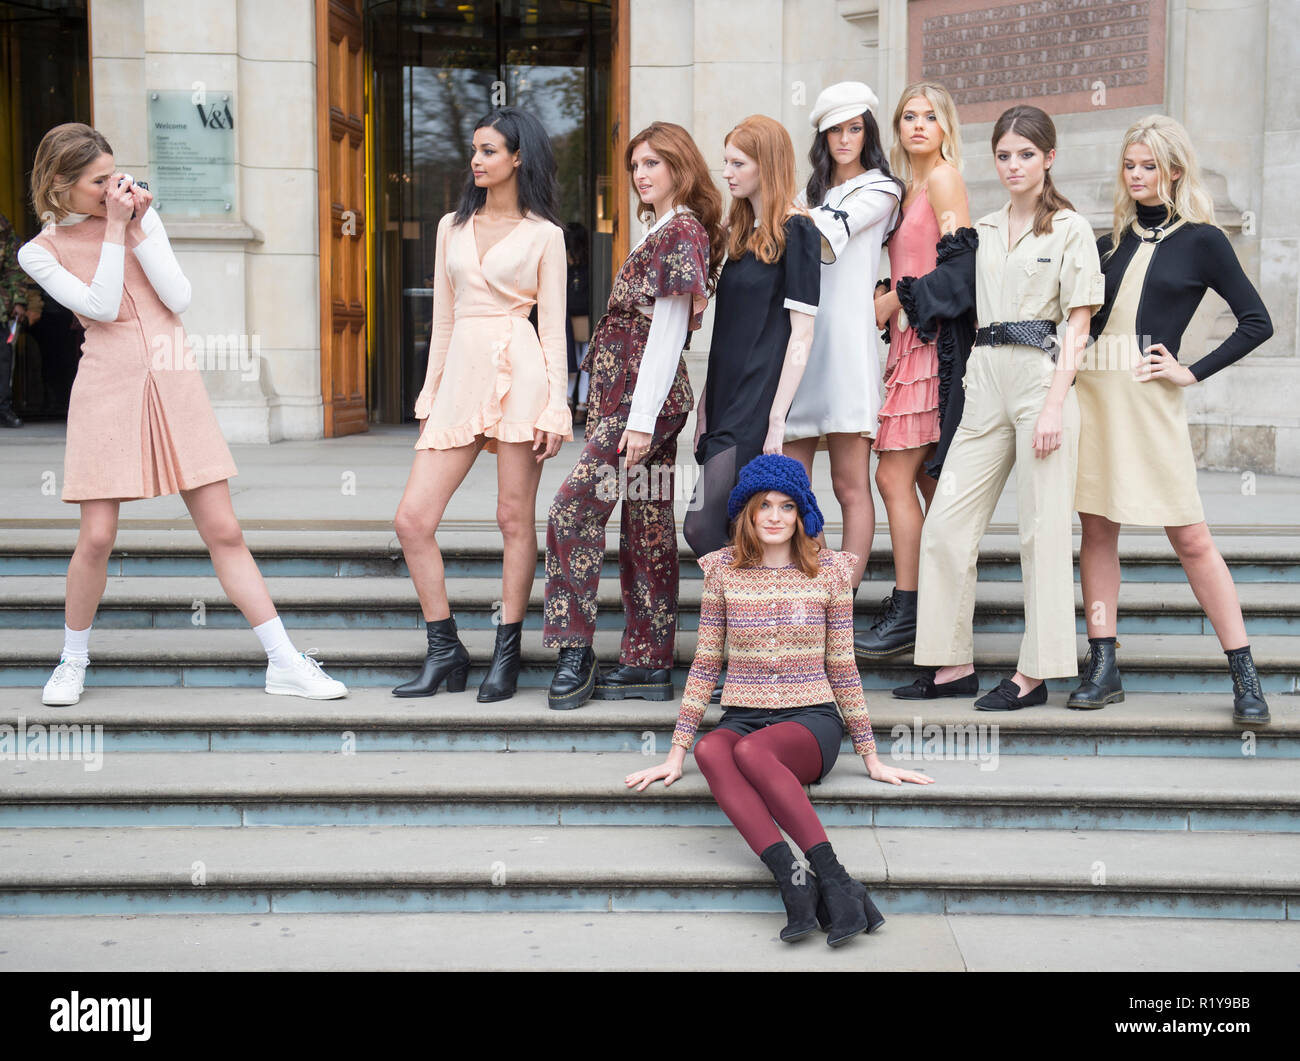 V&A, London, UK. 15 November, 2018. Contemporary models gather to form a Quant revival. The event marks the first time the public are able to purchase tickets for the Mary Quant exhibition opening in 6 April 2019. Models are (not in order): Ella Kitson, Jessica Fuhrmann, Imogen Parker, Fana Dade, Millie Corbould, Vanessa Jobb, Amber Rowan, Alys Phillips. Credit: Malcolm Park/Alamy Live News. - Stock Image